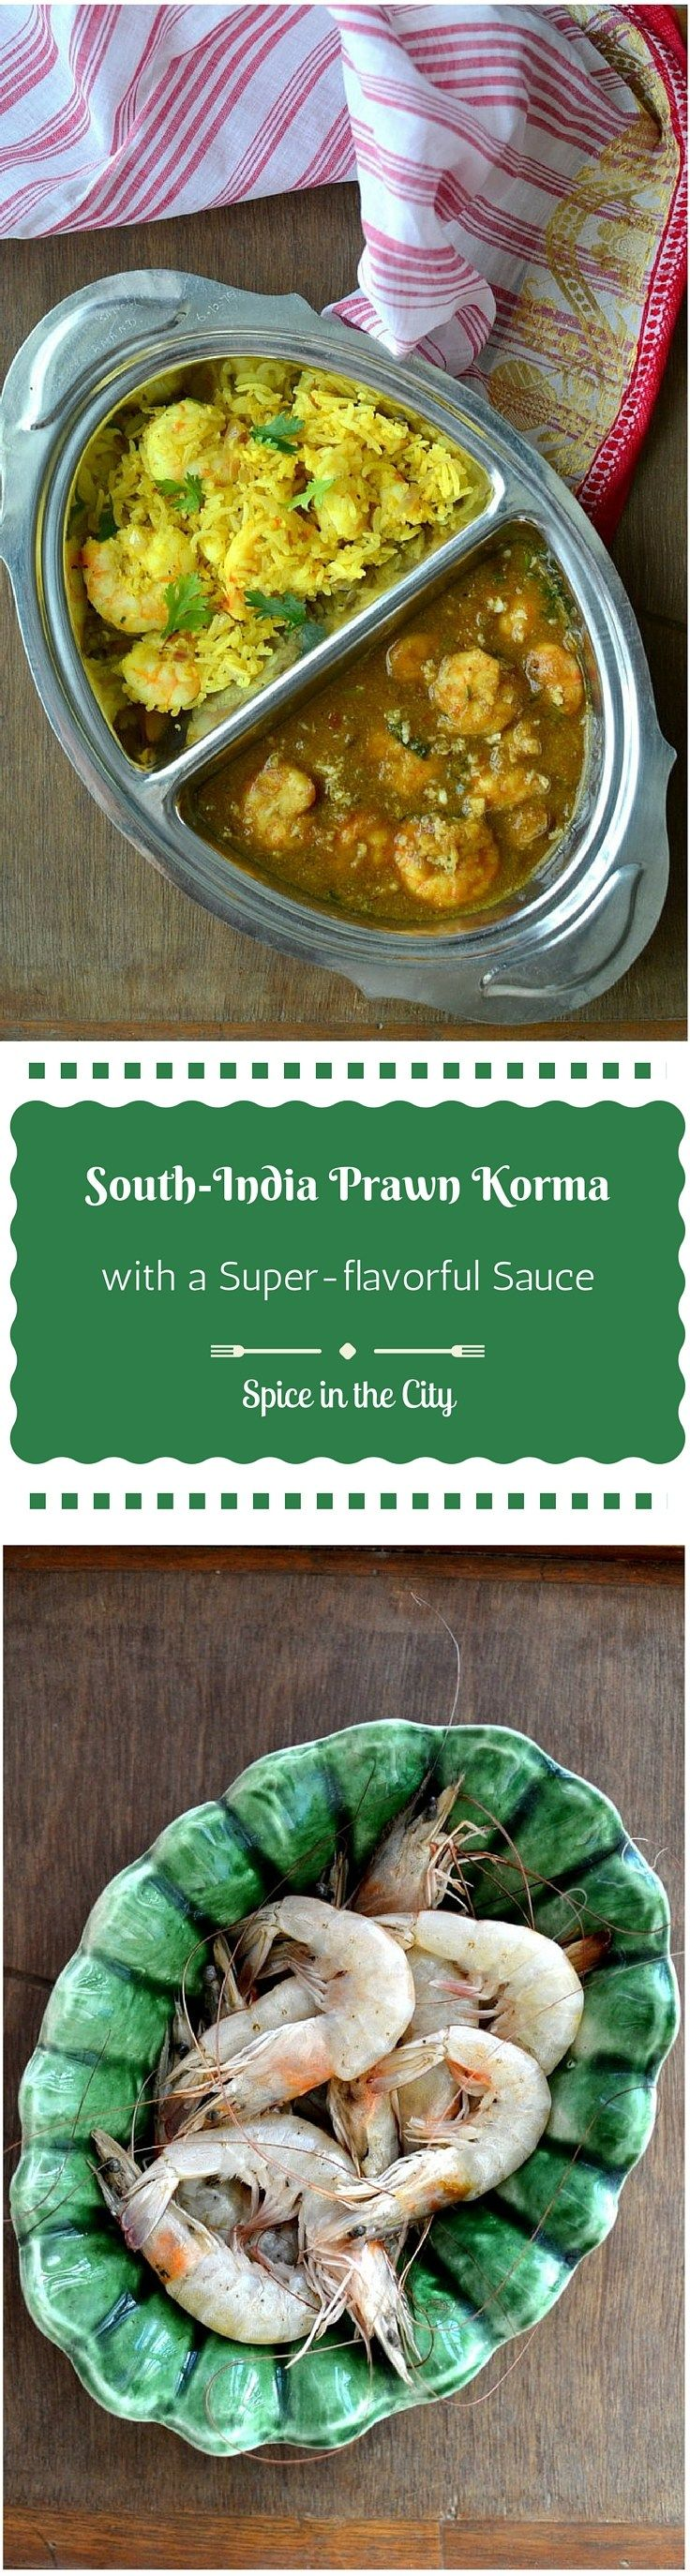 South Indian Prawn Korma: Jumbo prawns cooked in an Exotic super-flavorful South-Indian Sauce!   Spice in the City